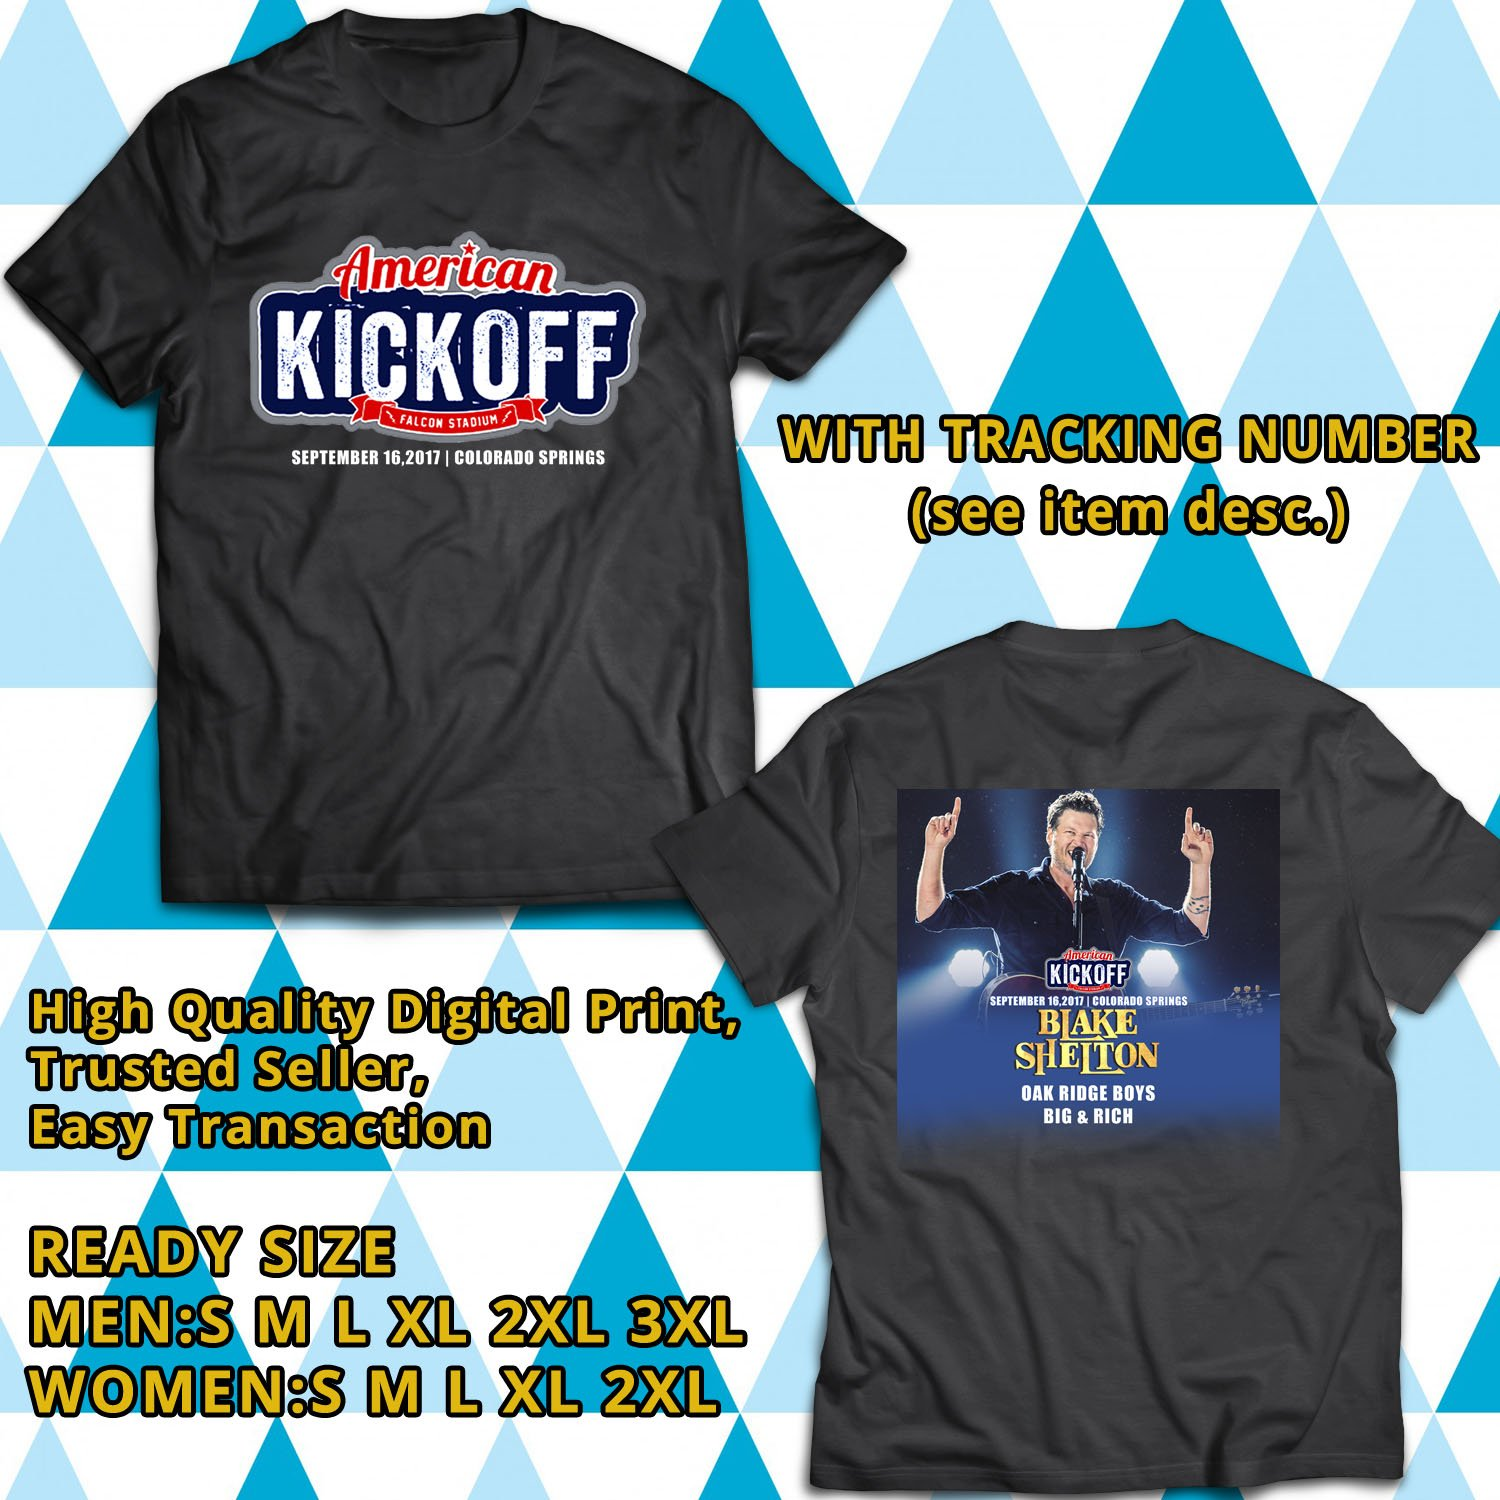 HITS AMERICAN KICKOFF WITH BLAKE SHELTON SEPT 2017 BLACK TEE'S 2SIDE MAN WOMEN ASTR